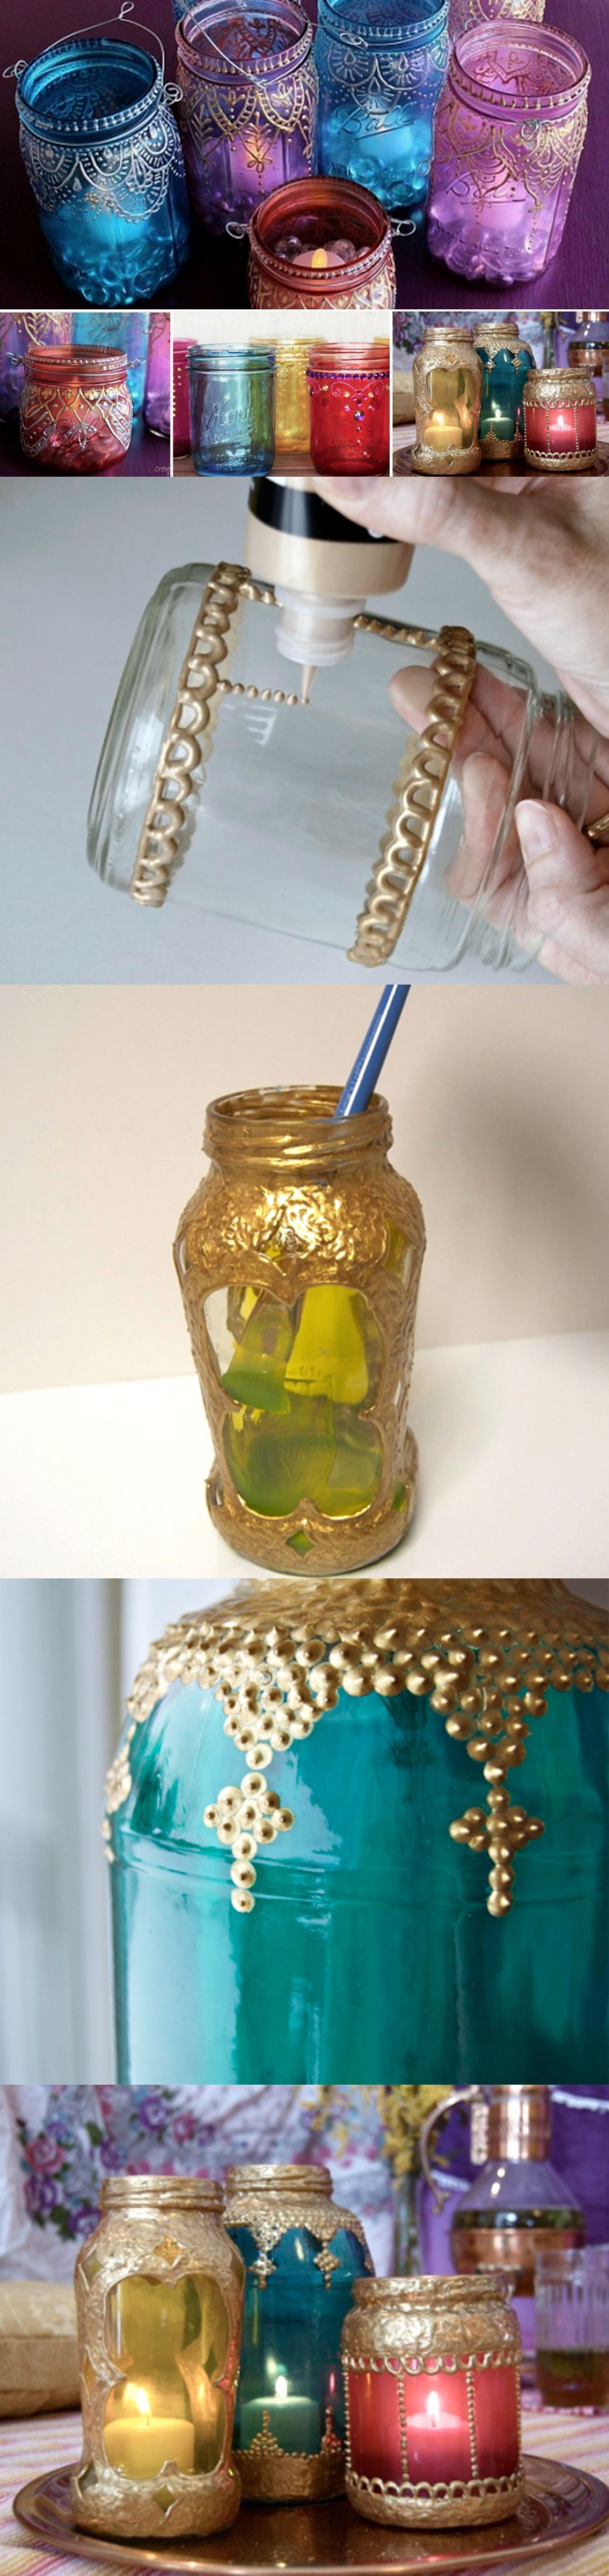 DIY Moroccan Jar Lanterns Pictures, Photos, and Images for Facebook,  Tumblr, Pinterest